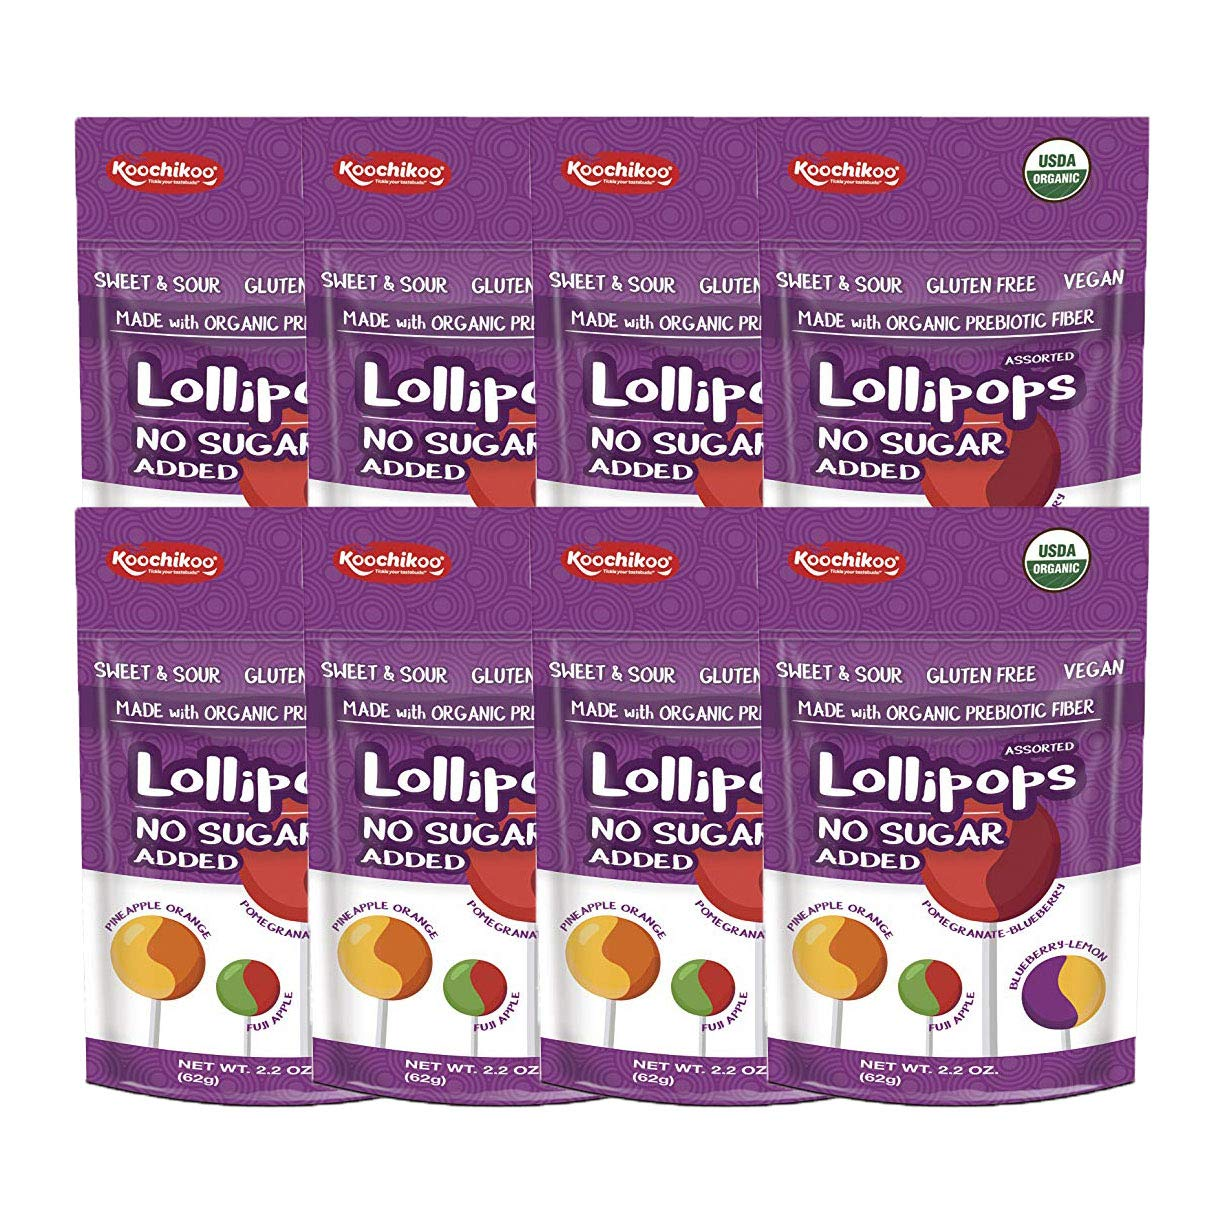 Koochikoo Sugar Free Organic Lollipop Pouch, Delicious Assorted Fruity Flavors, 10 CT (Pack - 8)